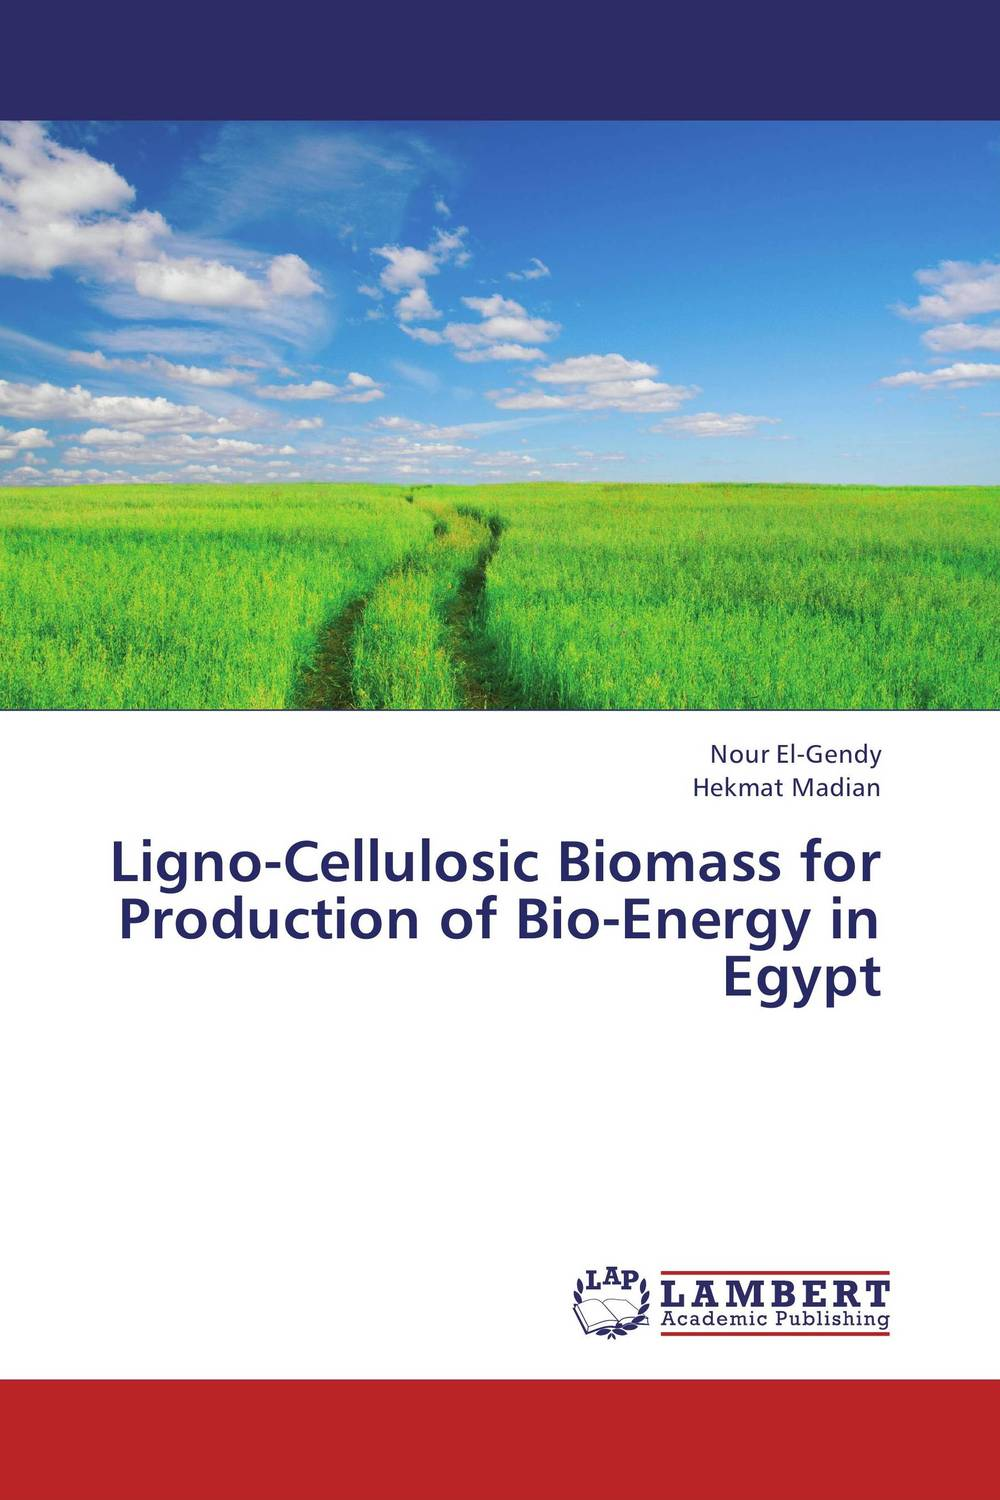 Ligno-Cellulosic Biomass for Production of Bio-Energy in Egypt amal owis and yasser el tahlawy residues and wastes biomass in egypt